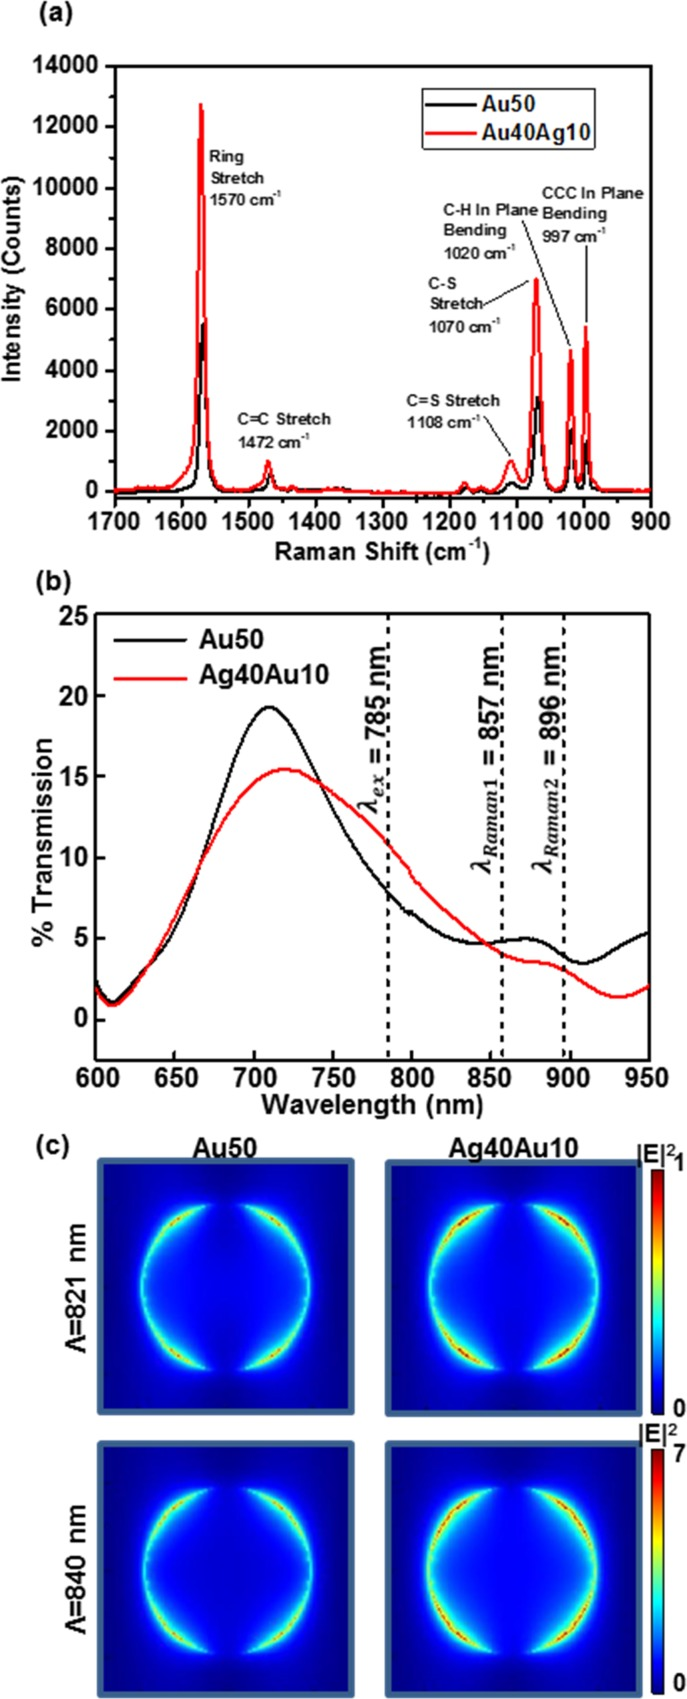 (a) SERS spectra of benzenethiol adsorbed onto Au50 and Ag40Au10 quasi-3D PCs measured with laser power of ≈5 mW. (b) Experimental transmission spectra in air for Au50 and Ag40Au10 quasi-3D PCs used to collect the Raman spectra in (a). The locations of the laser excitation and Raman peaks are marked as λ ex , λ Raman1 and λ Raman2 , respectively. (c) FDTD-computed top ( x – y ) intensity distribution at 5 nm away from the surface of Au50 and Ag40Au10 quasi-3D PCs at λ = 821 nm and 840 nm.